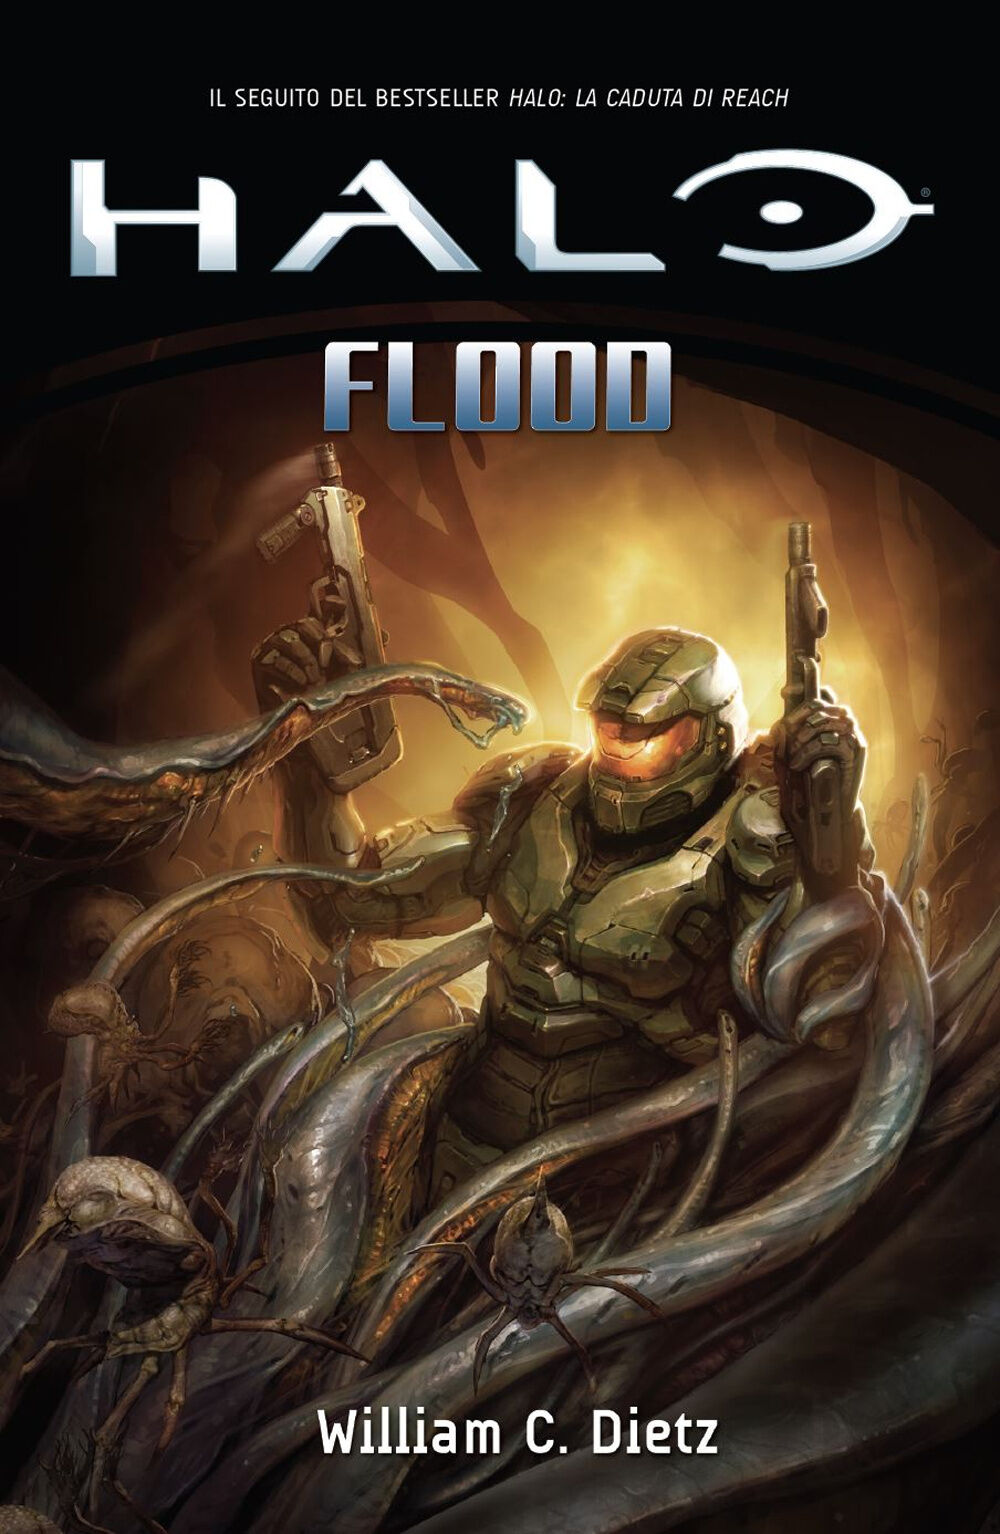 Halo. Flood